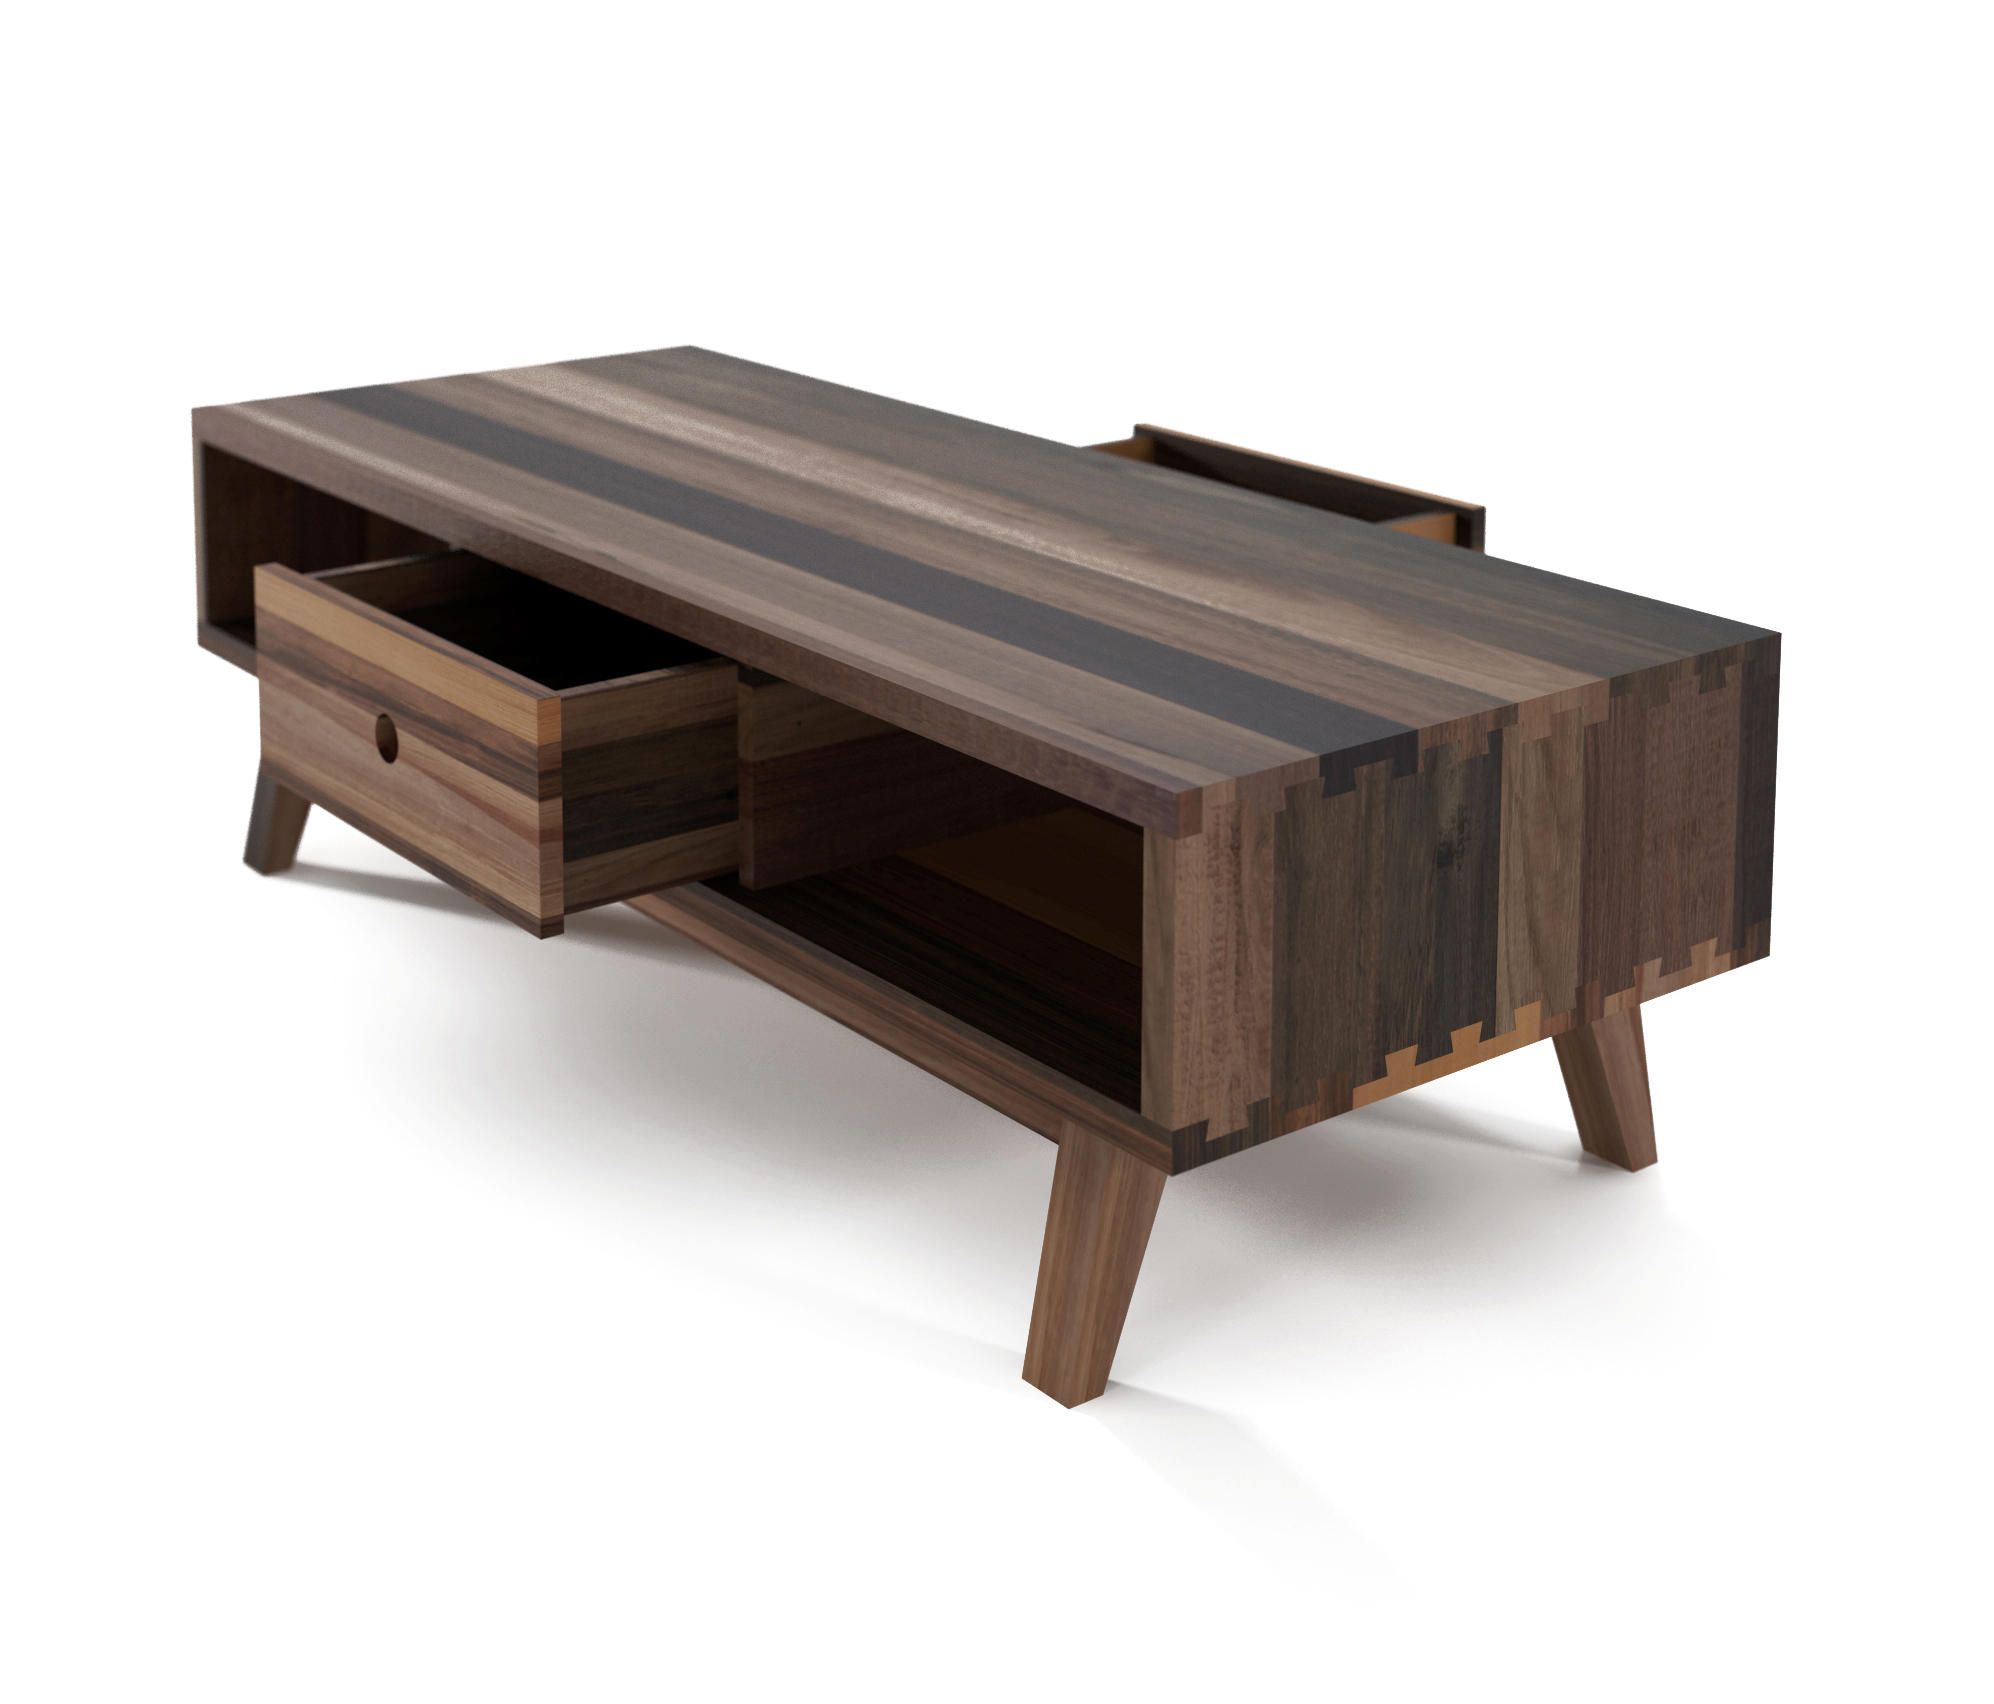 Map Drawer Coffee Table: BROOKLYN COFFEE TABLE 2 DRAWERS 2 NICHES